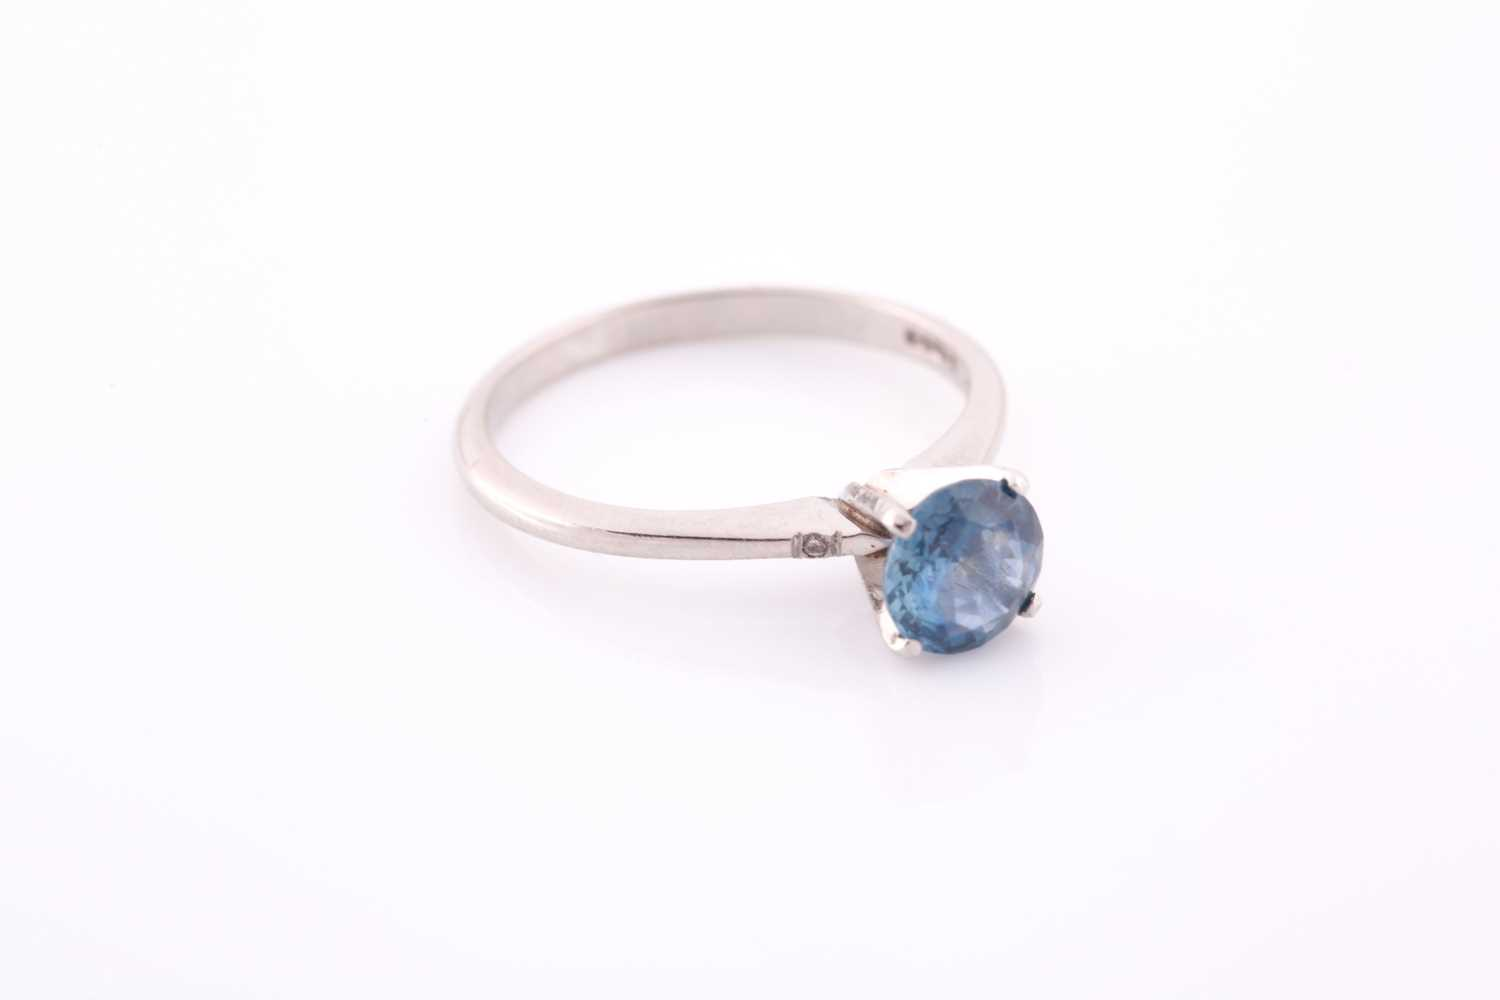 A platinum and solitaire sapphire ring, set with a mixed round-cut blue sapphire of approximately - Image 4 of 4